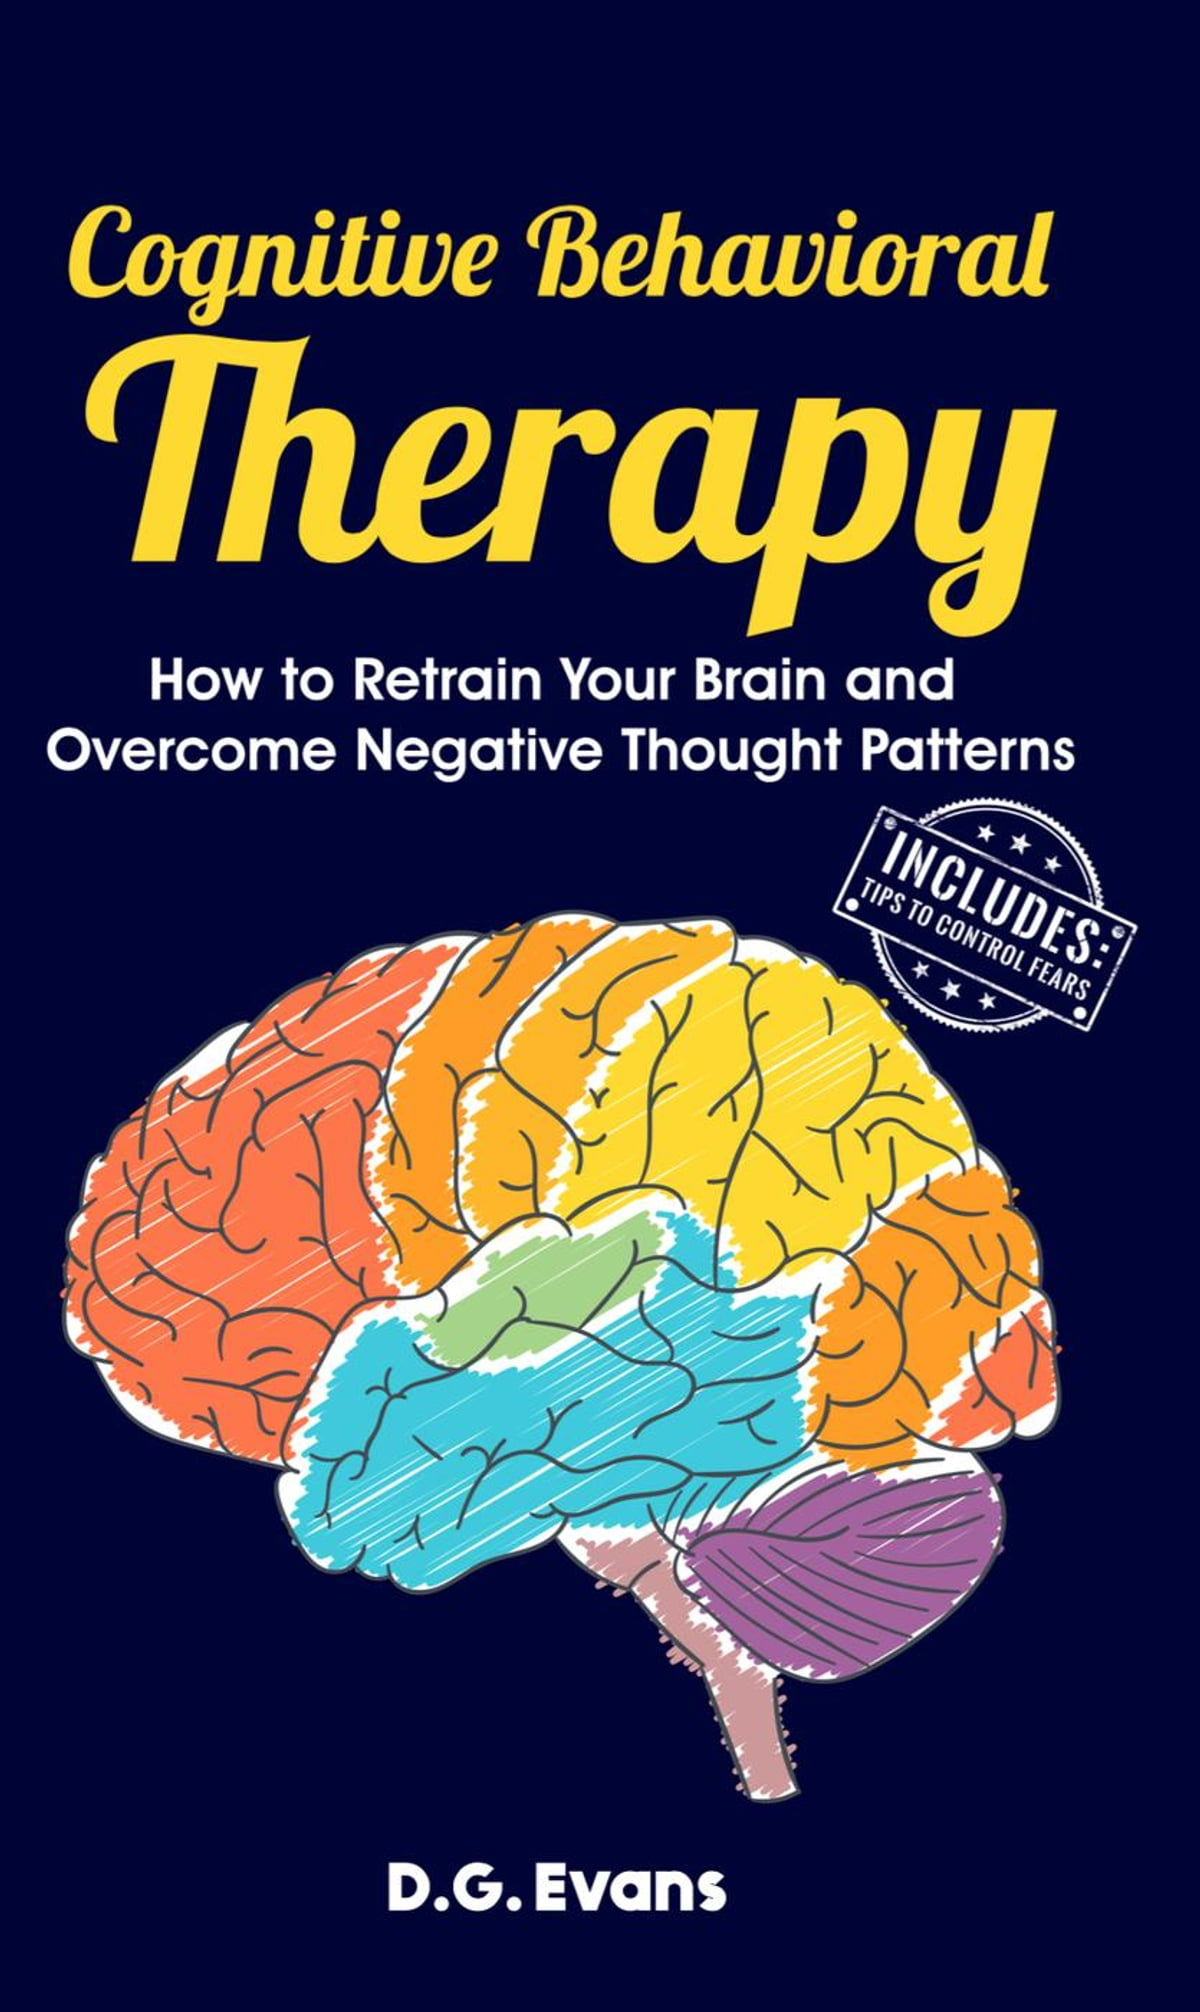 Cognitive Behavioral Therapy How To Retrain Your Brain